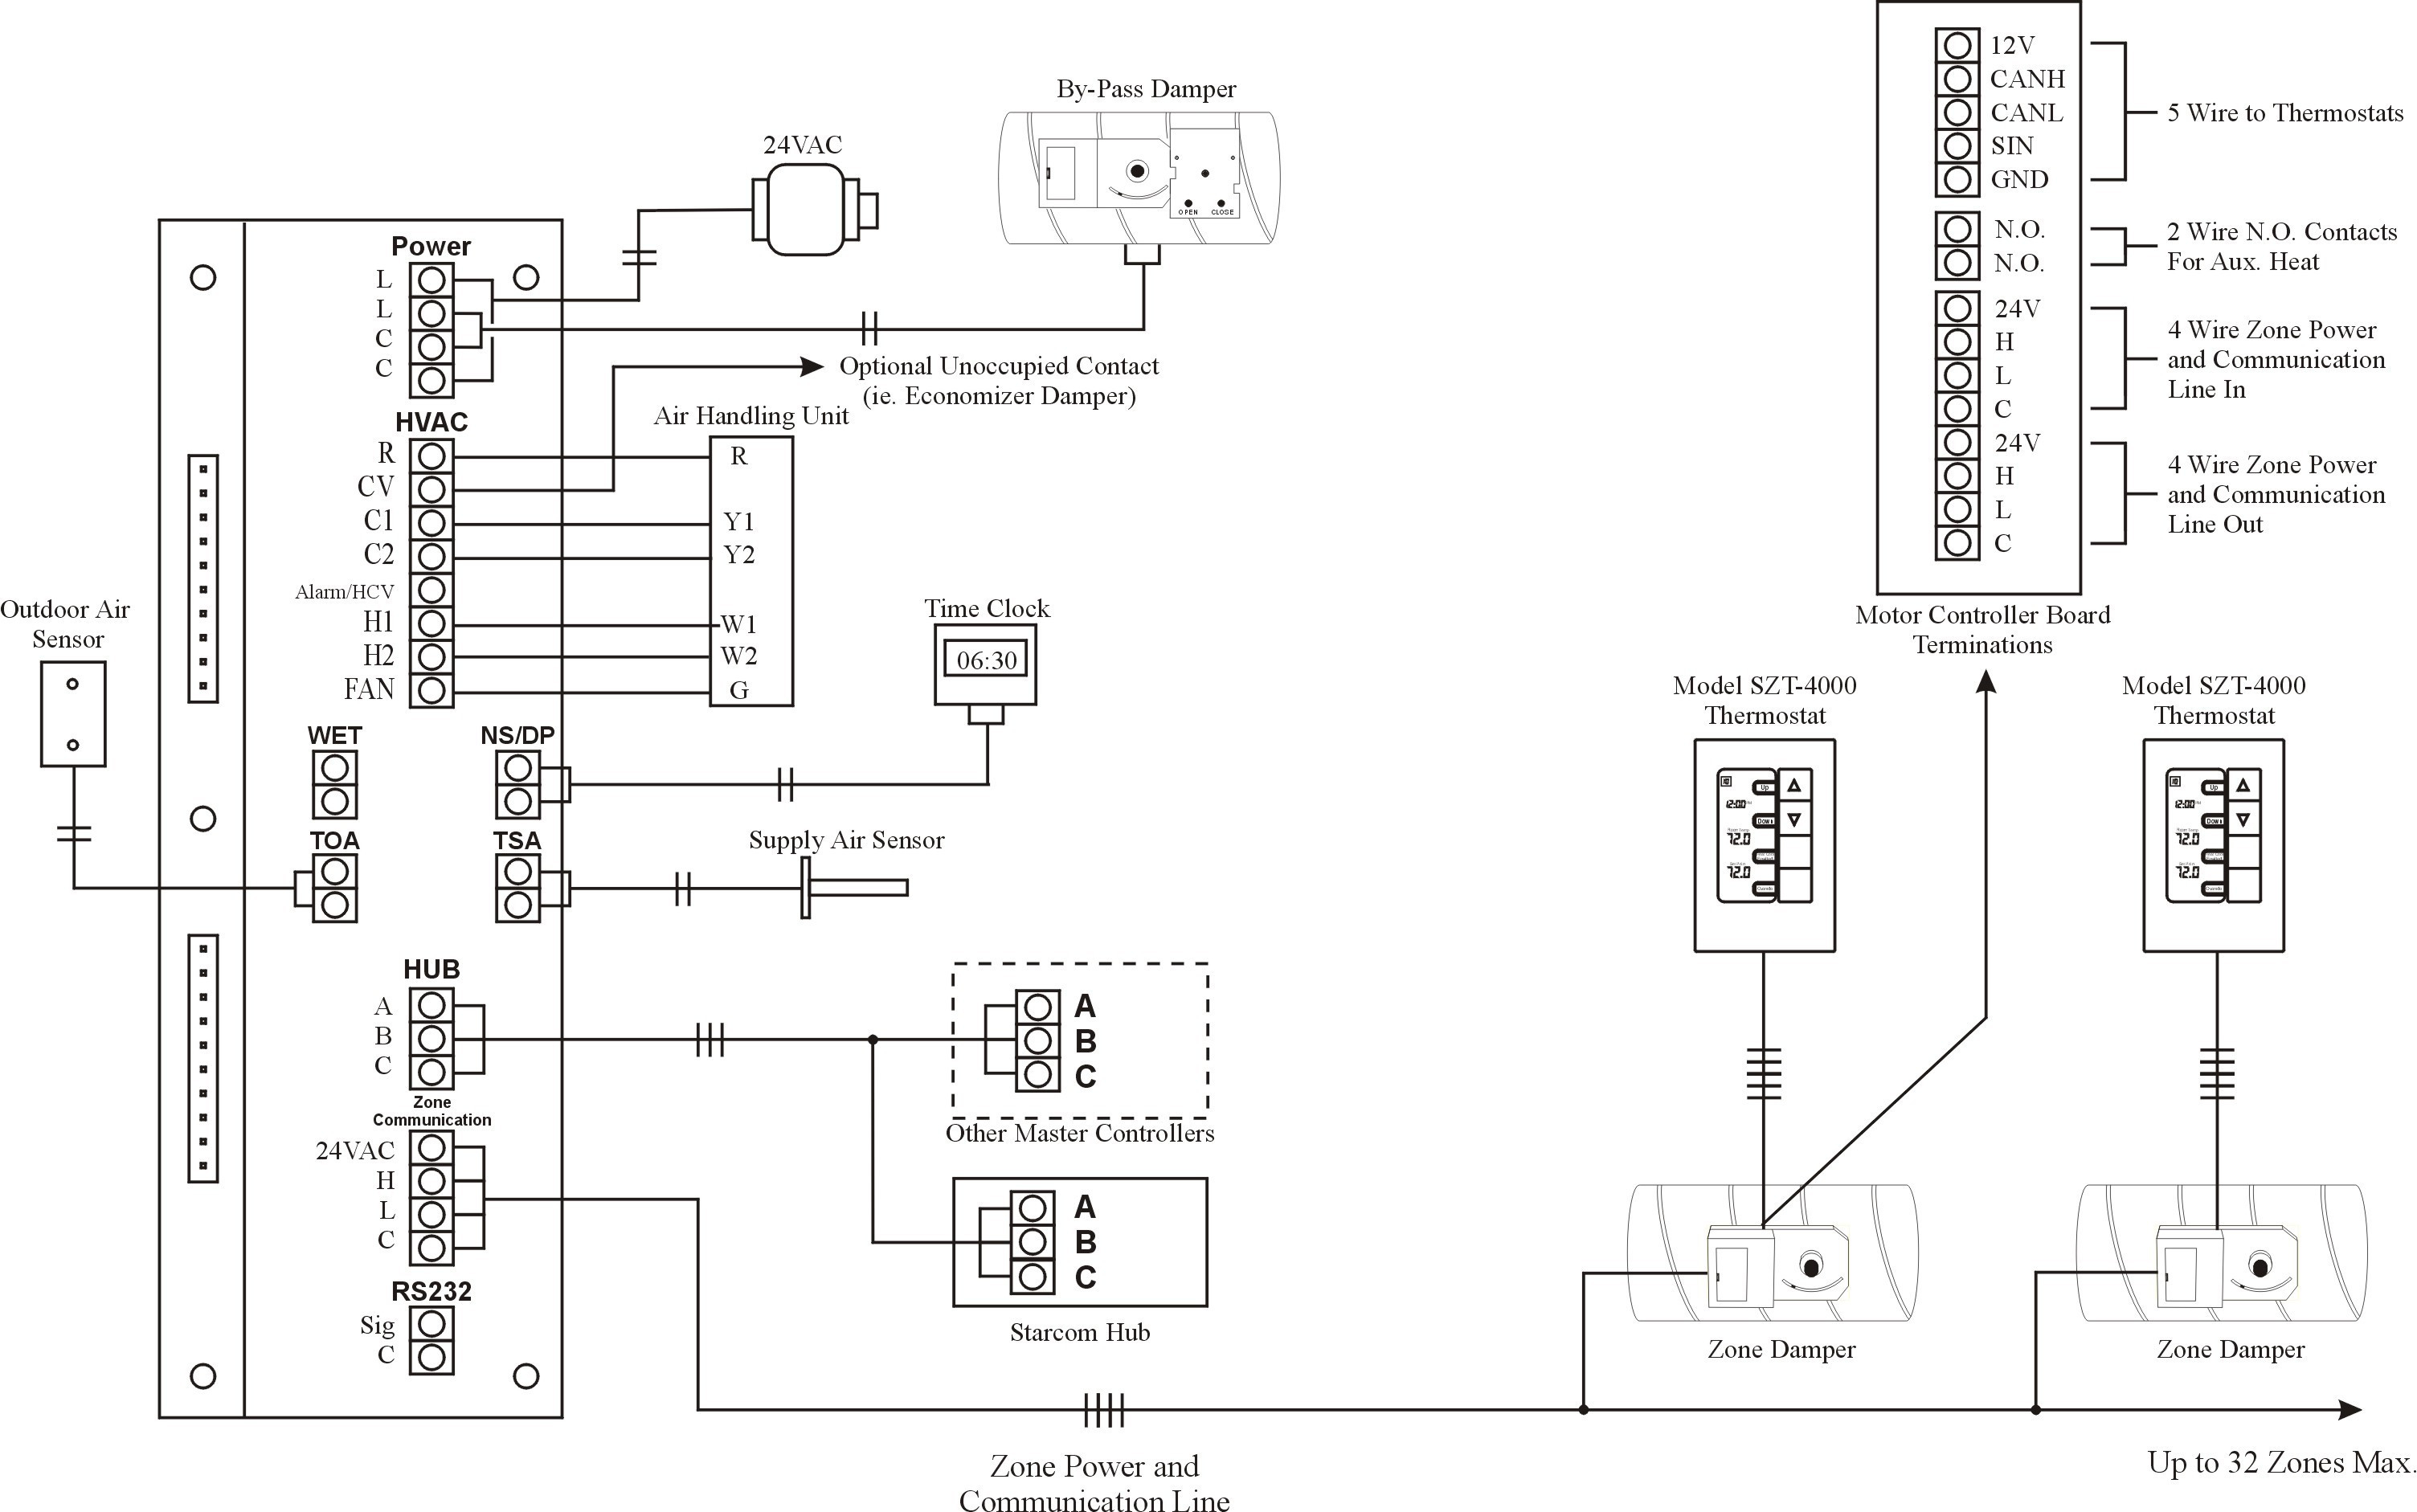 adt alarm system wiring diagram Collection-adt wiring diagram Download Wiring Diagram For Honeywell Alarm Refrence Adt Alarm Wiring Diagram Beautiful 19-b